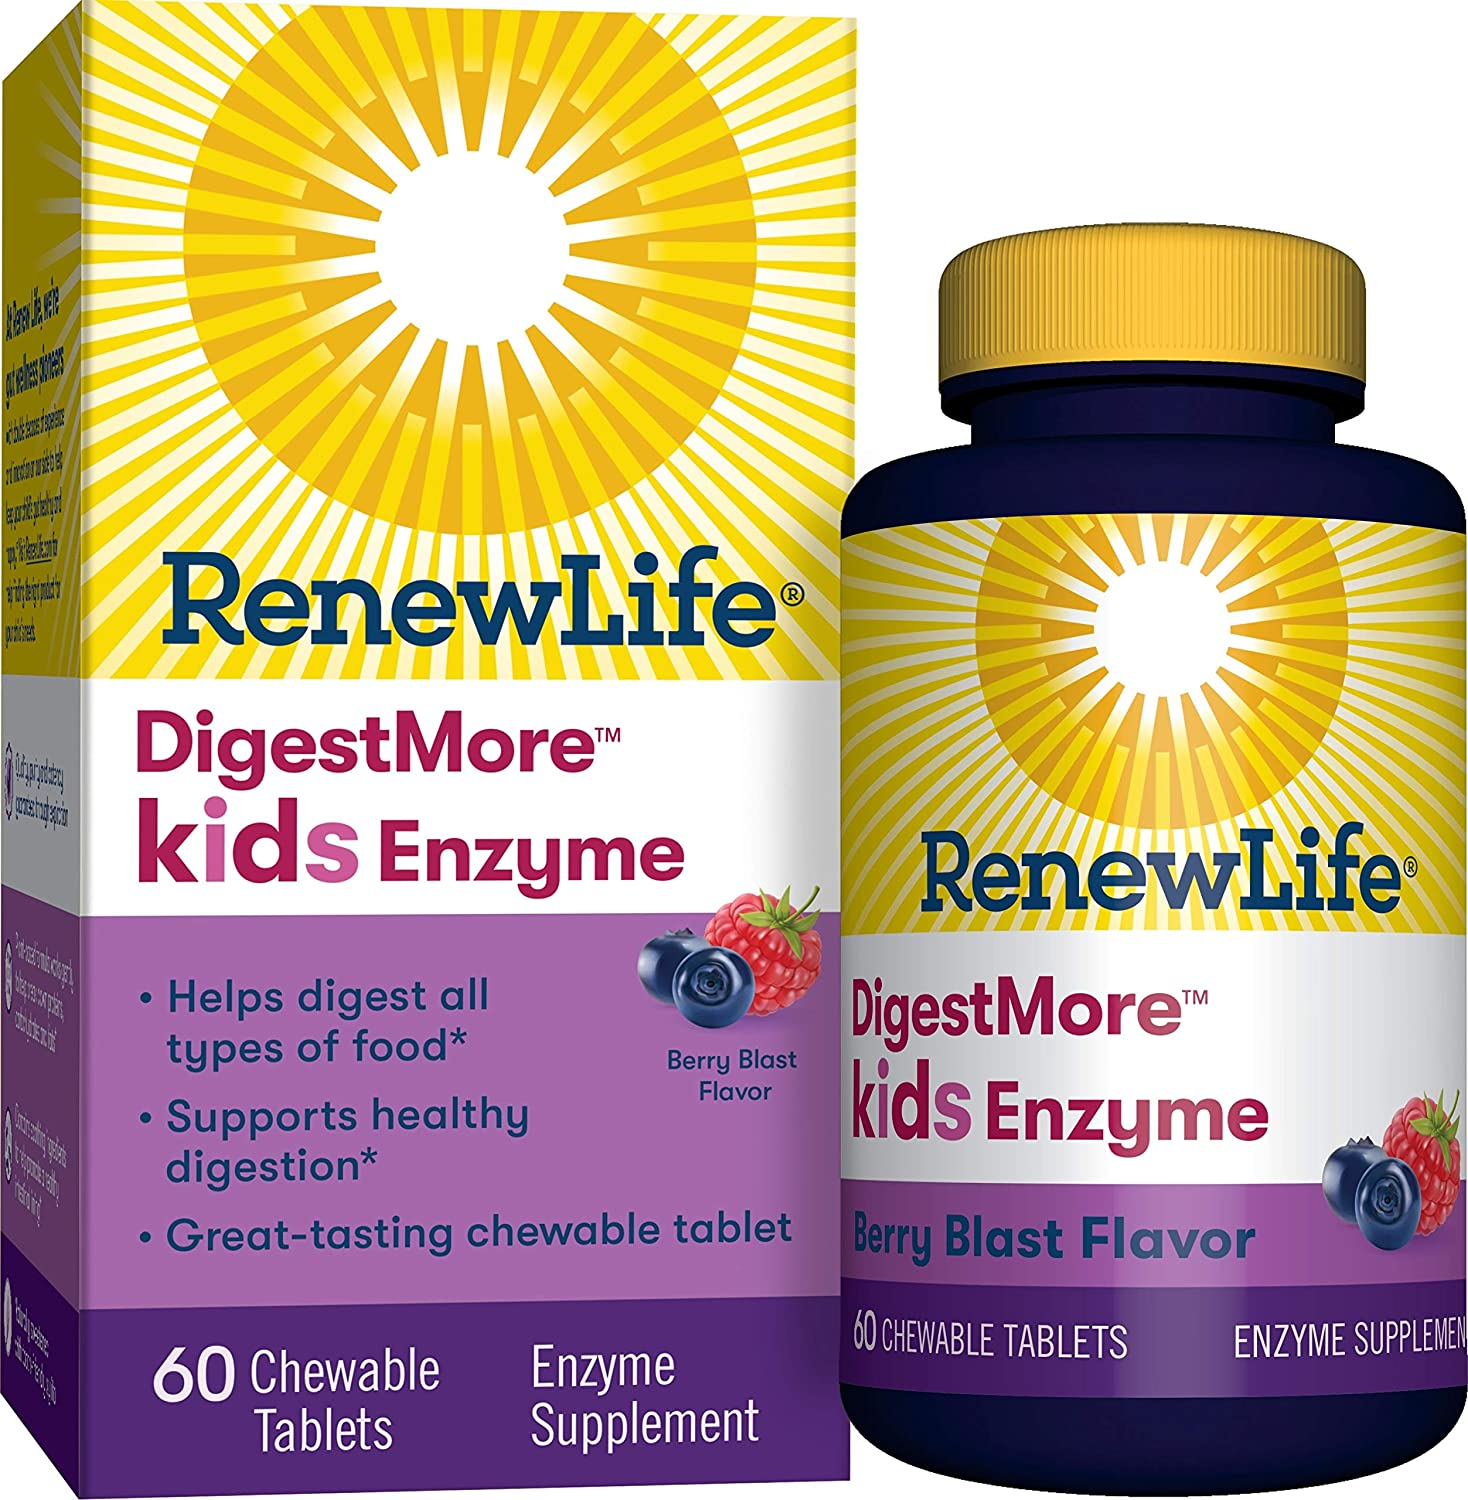 Renew LifeKids Digestive Plant-Based Enzyme Supplement - DigestMore Kids Enzyme, Berry Blast - 60 Chewable Tablets